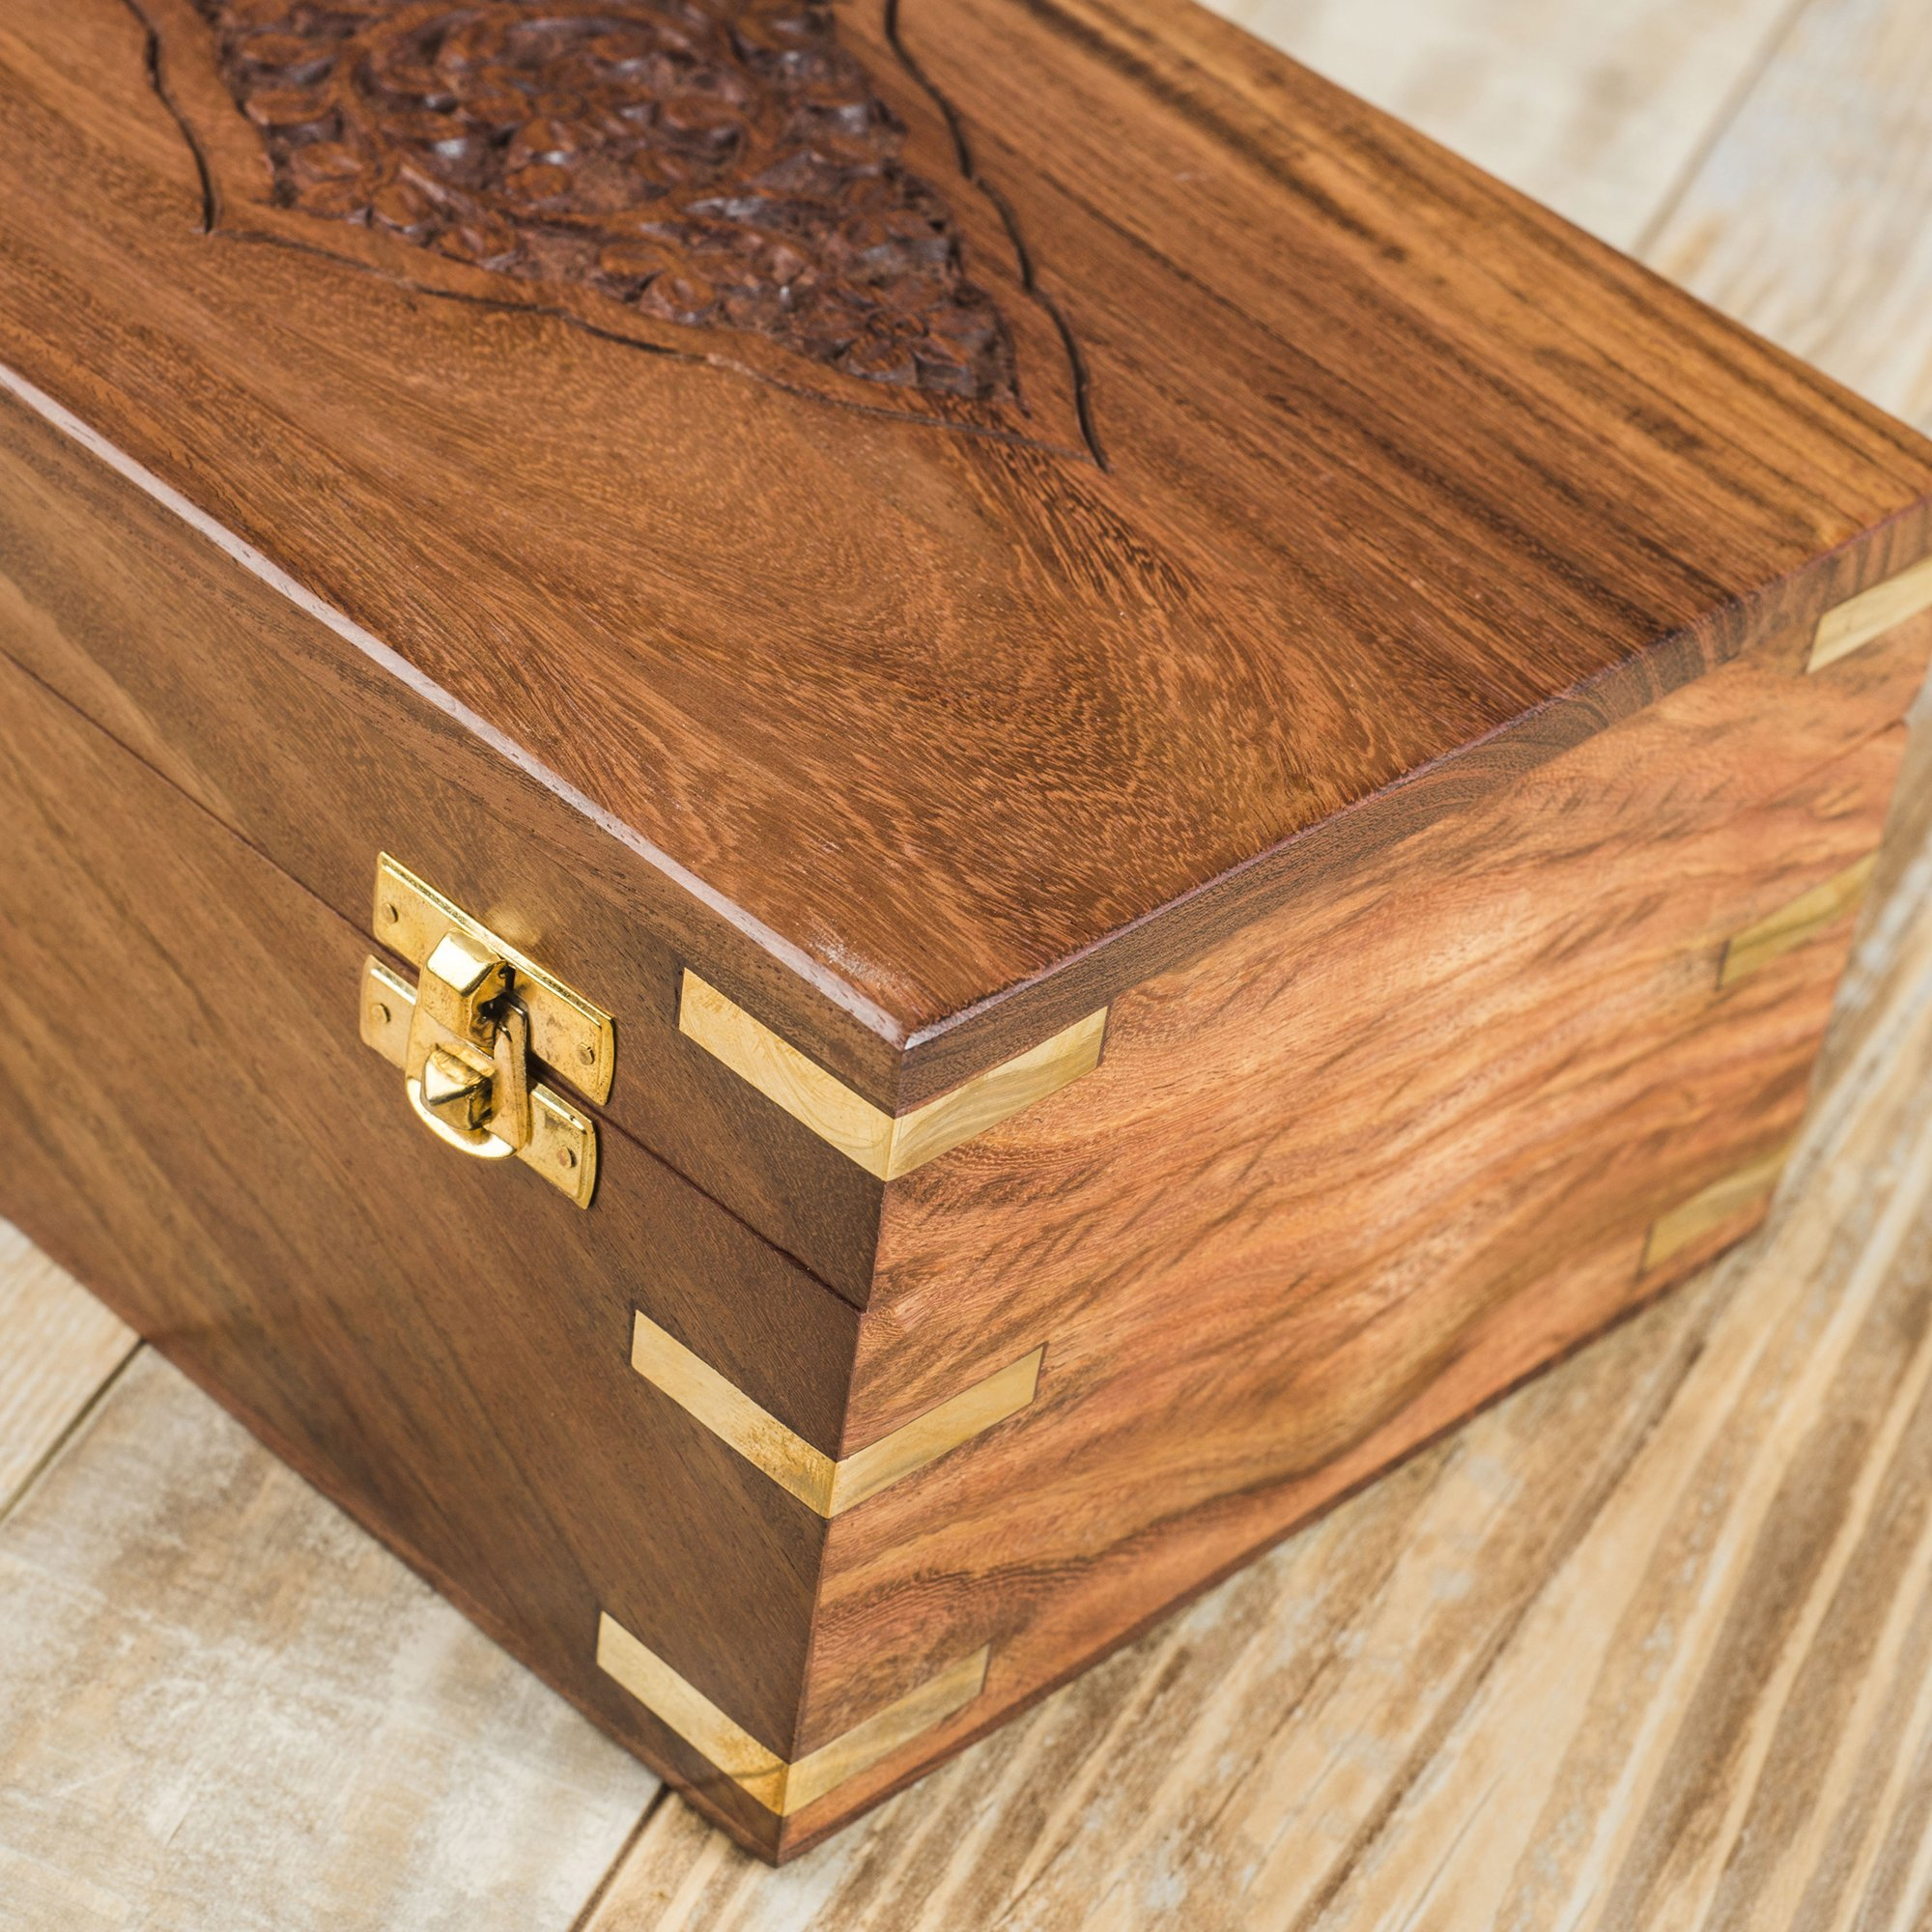 Rusticity Wood Tea Bag/Spice Storage Box with Lid and 9 pockets | Handmade | (10.2 x 6.2 x 4 in) by Rusticity (Image #3)